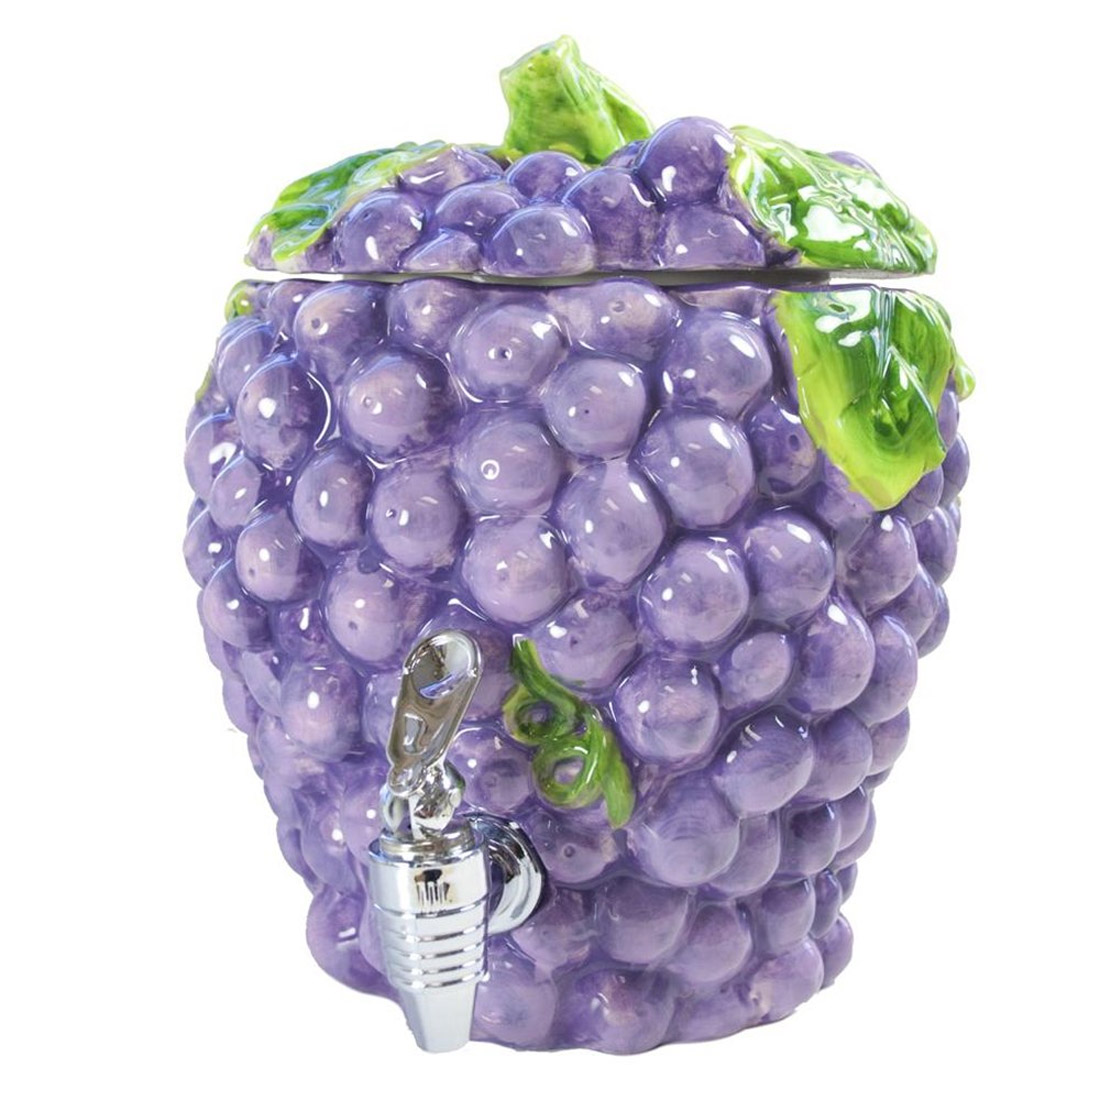 purple grapes 33641